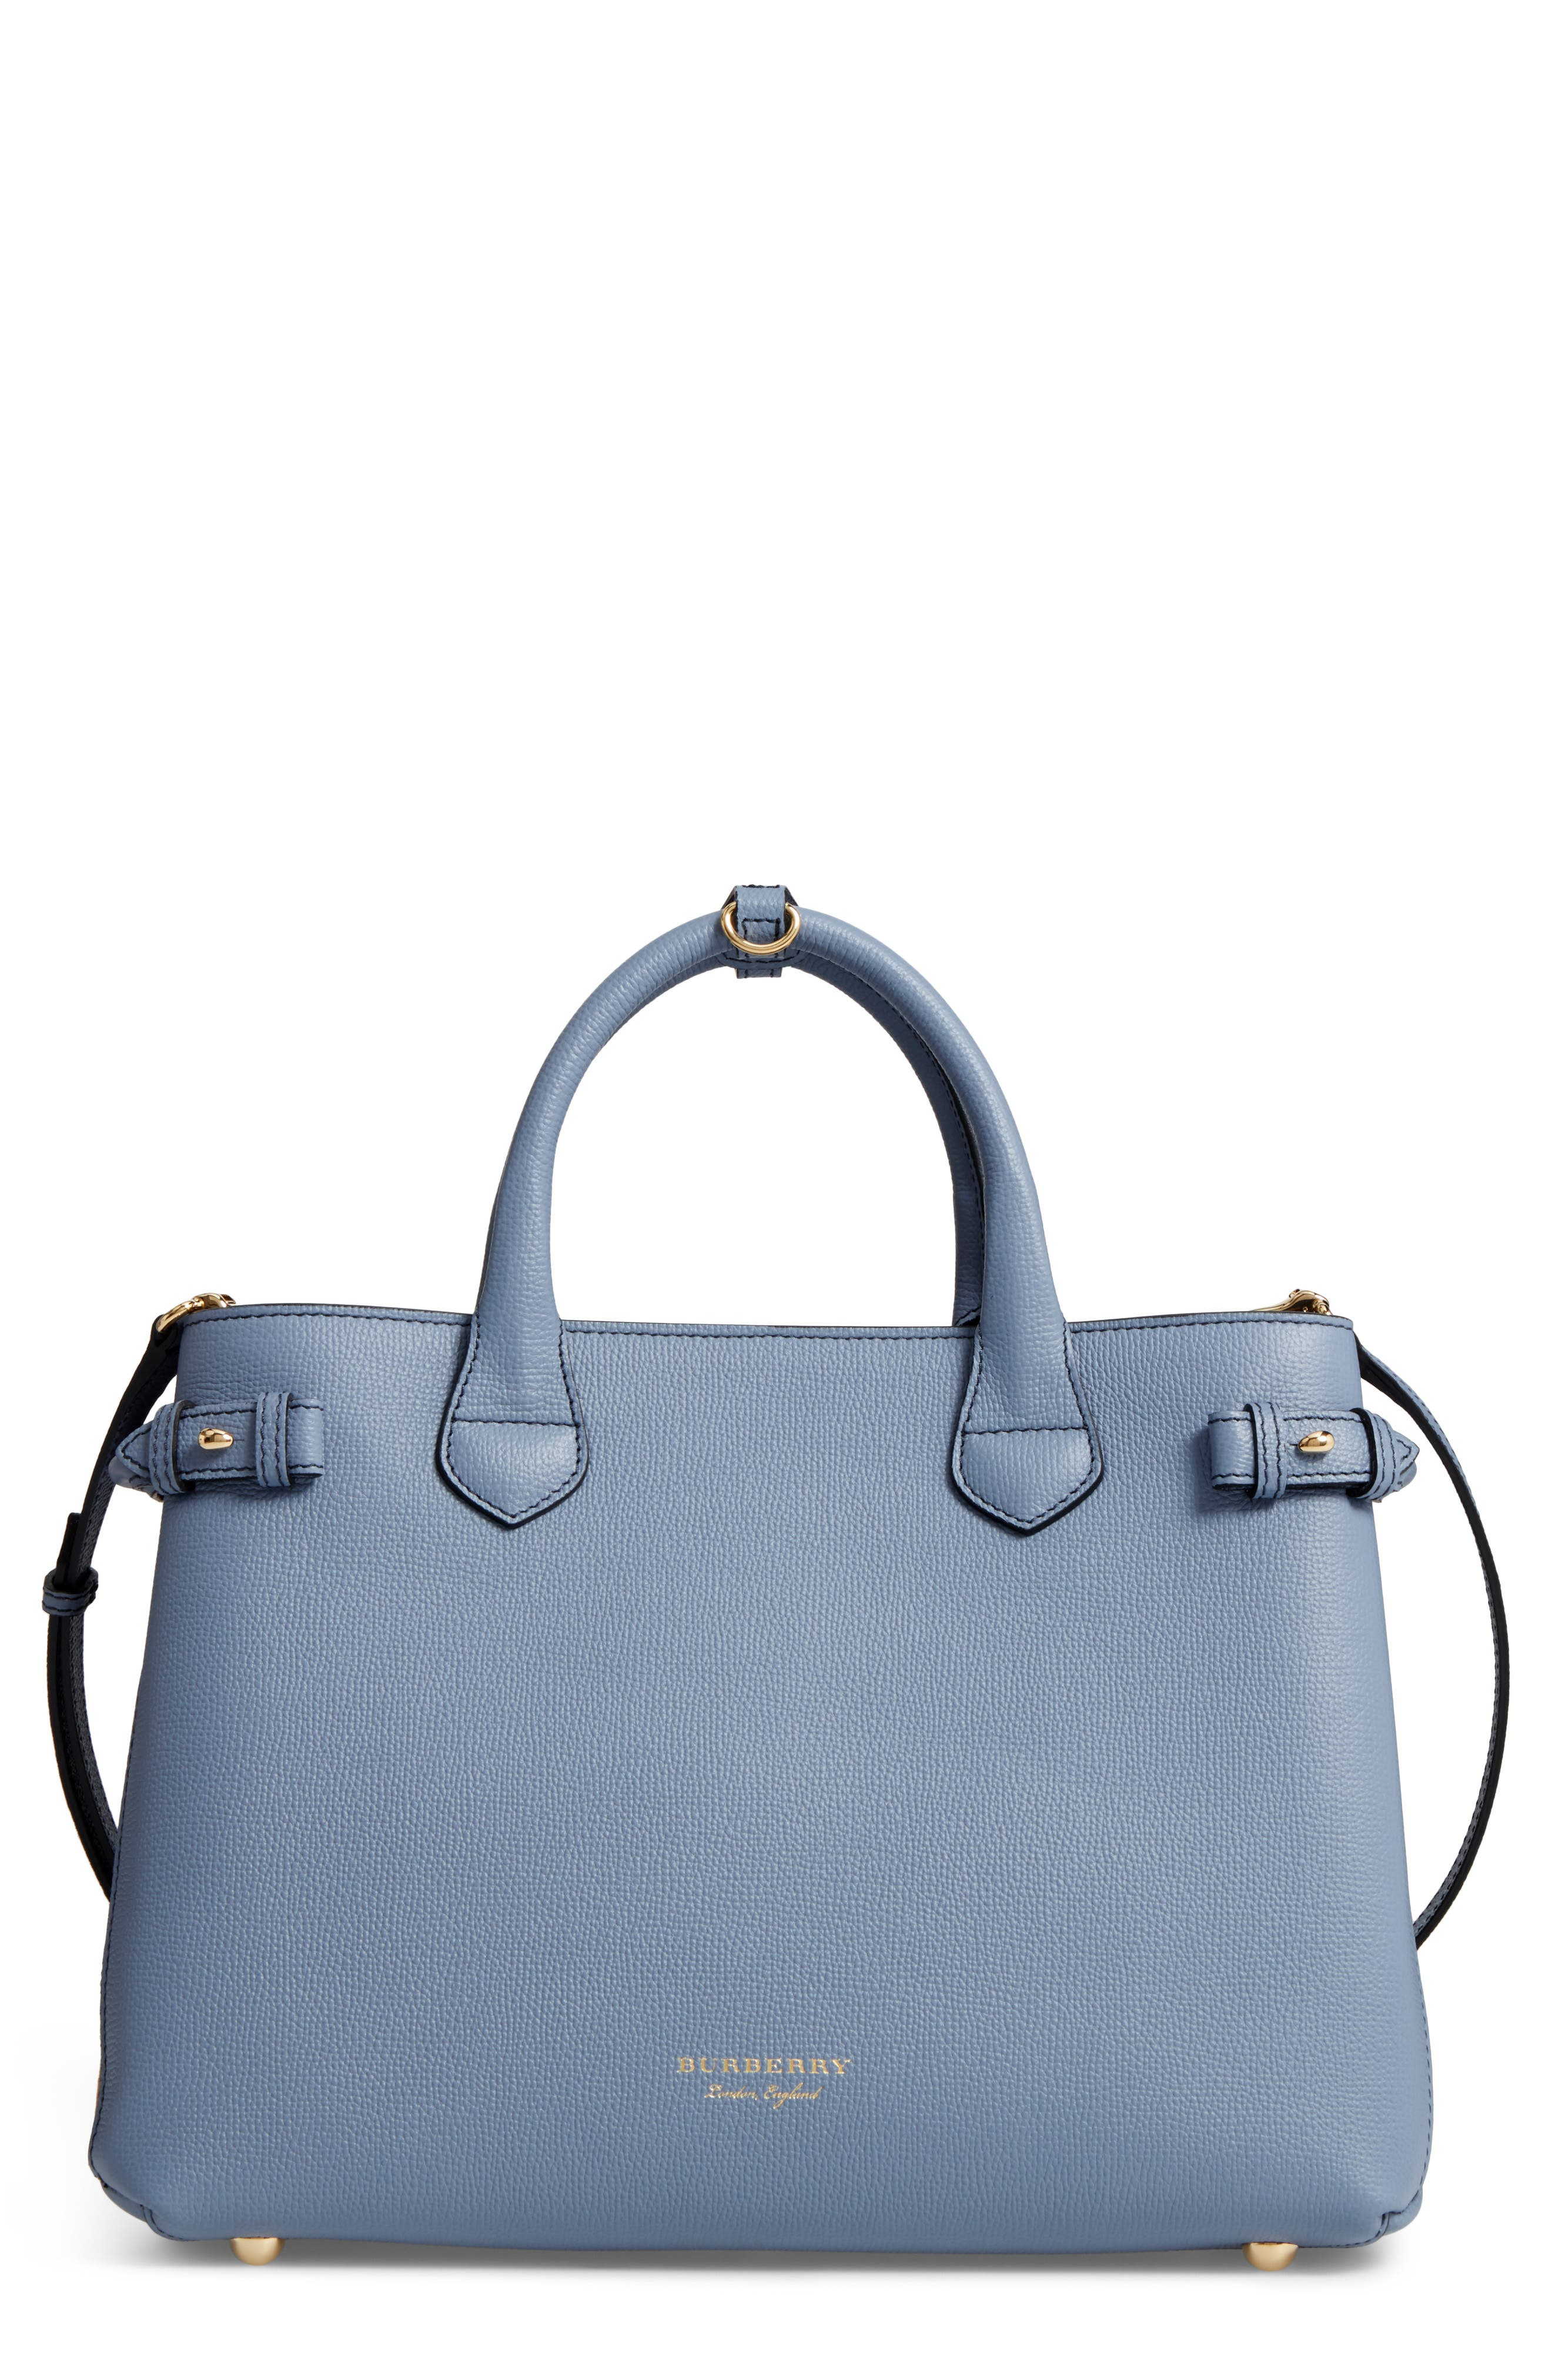 Medium Banner House Check Leather Tote,                         Main,                         color, Slate Blue